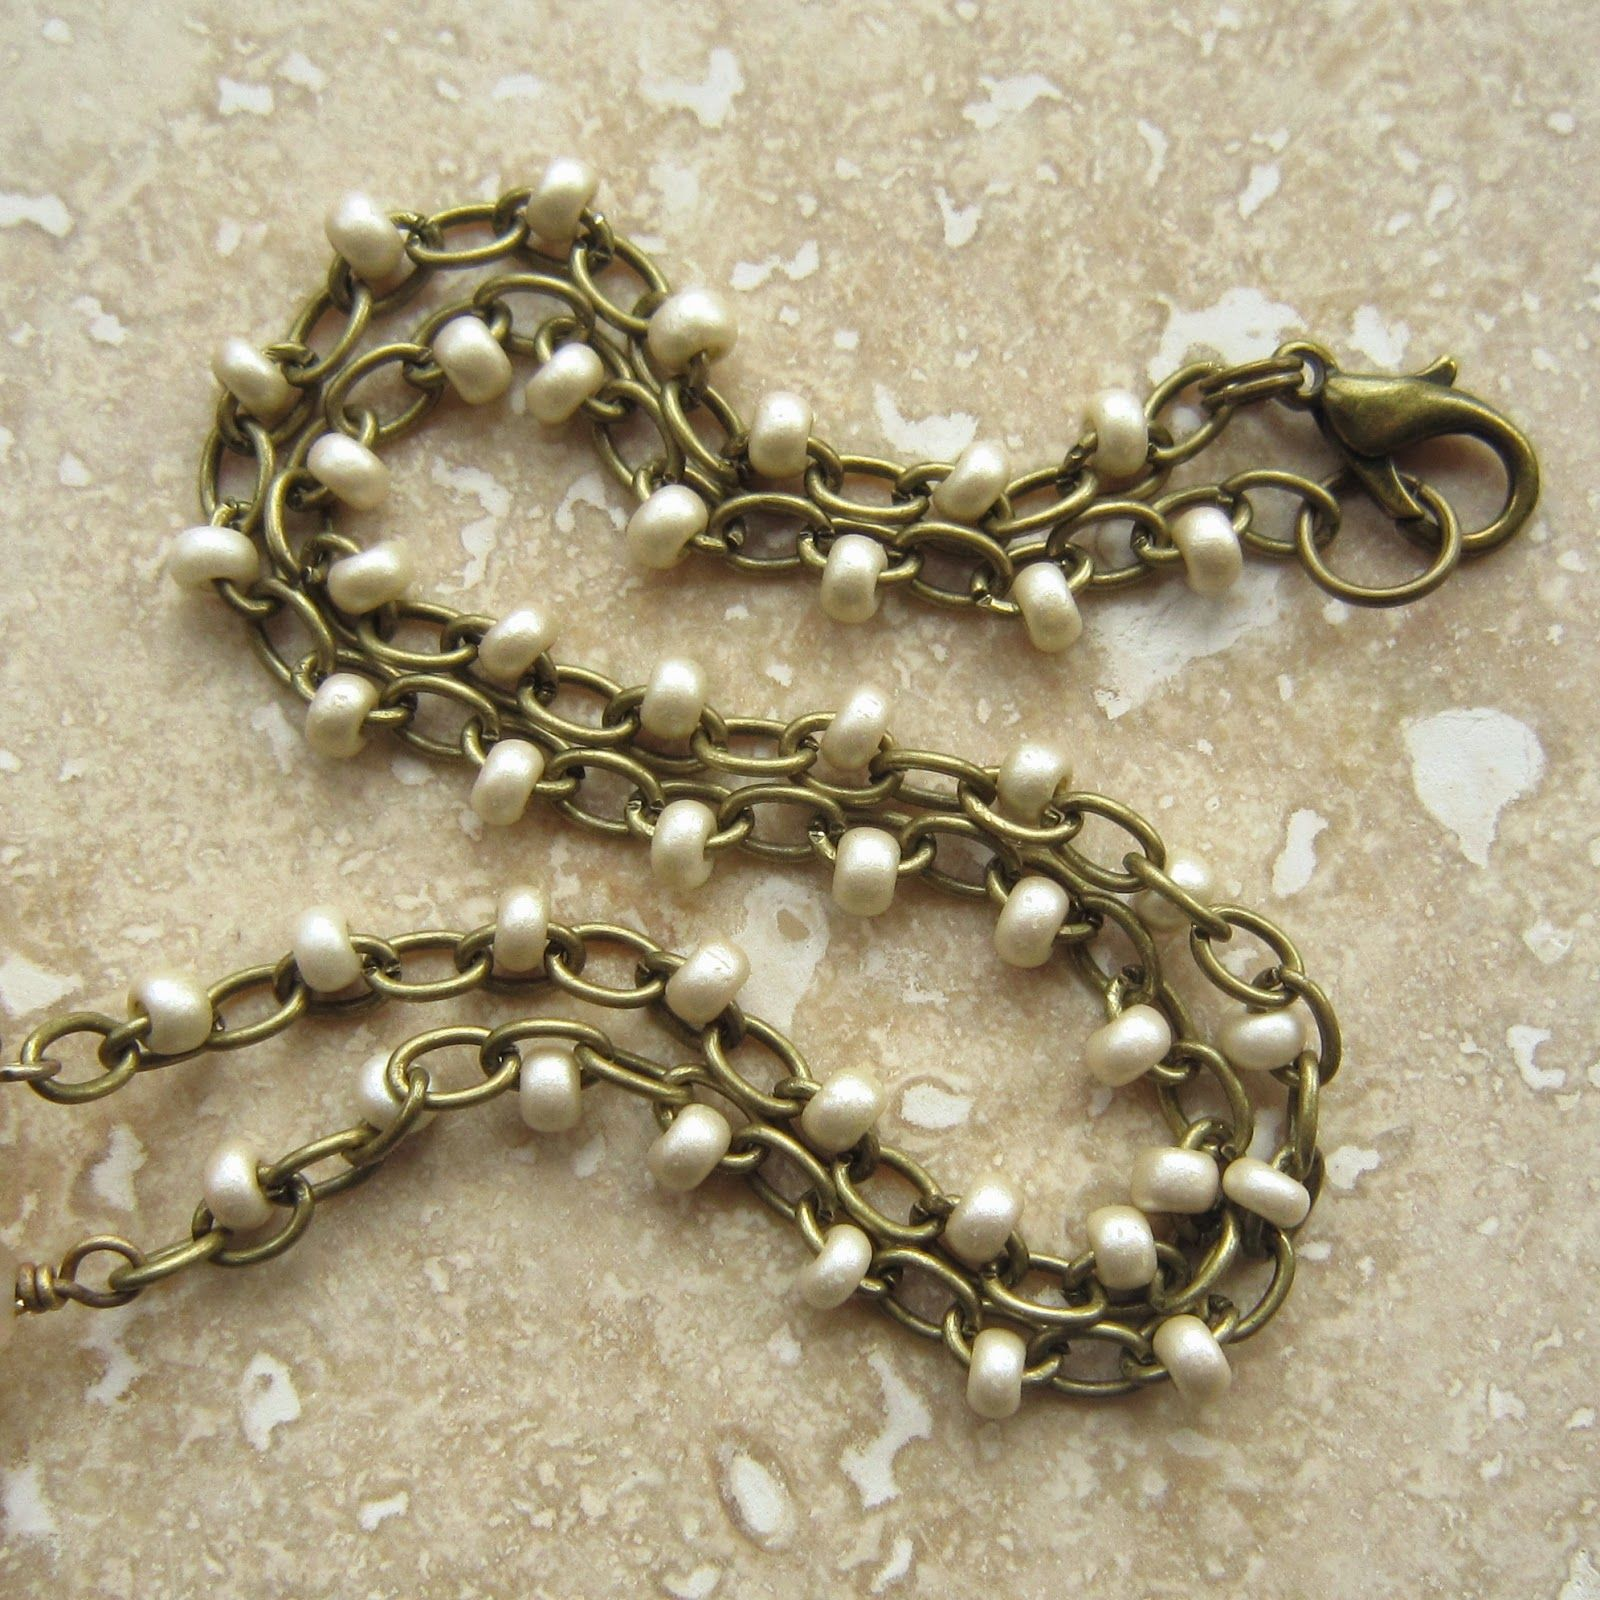 Add seed beads to chain.